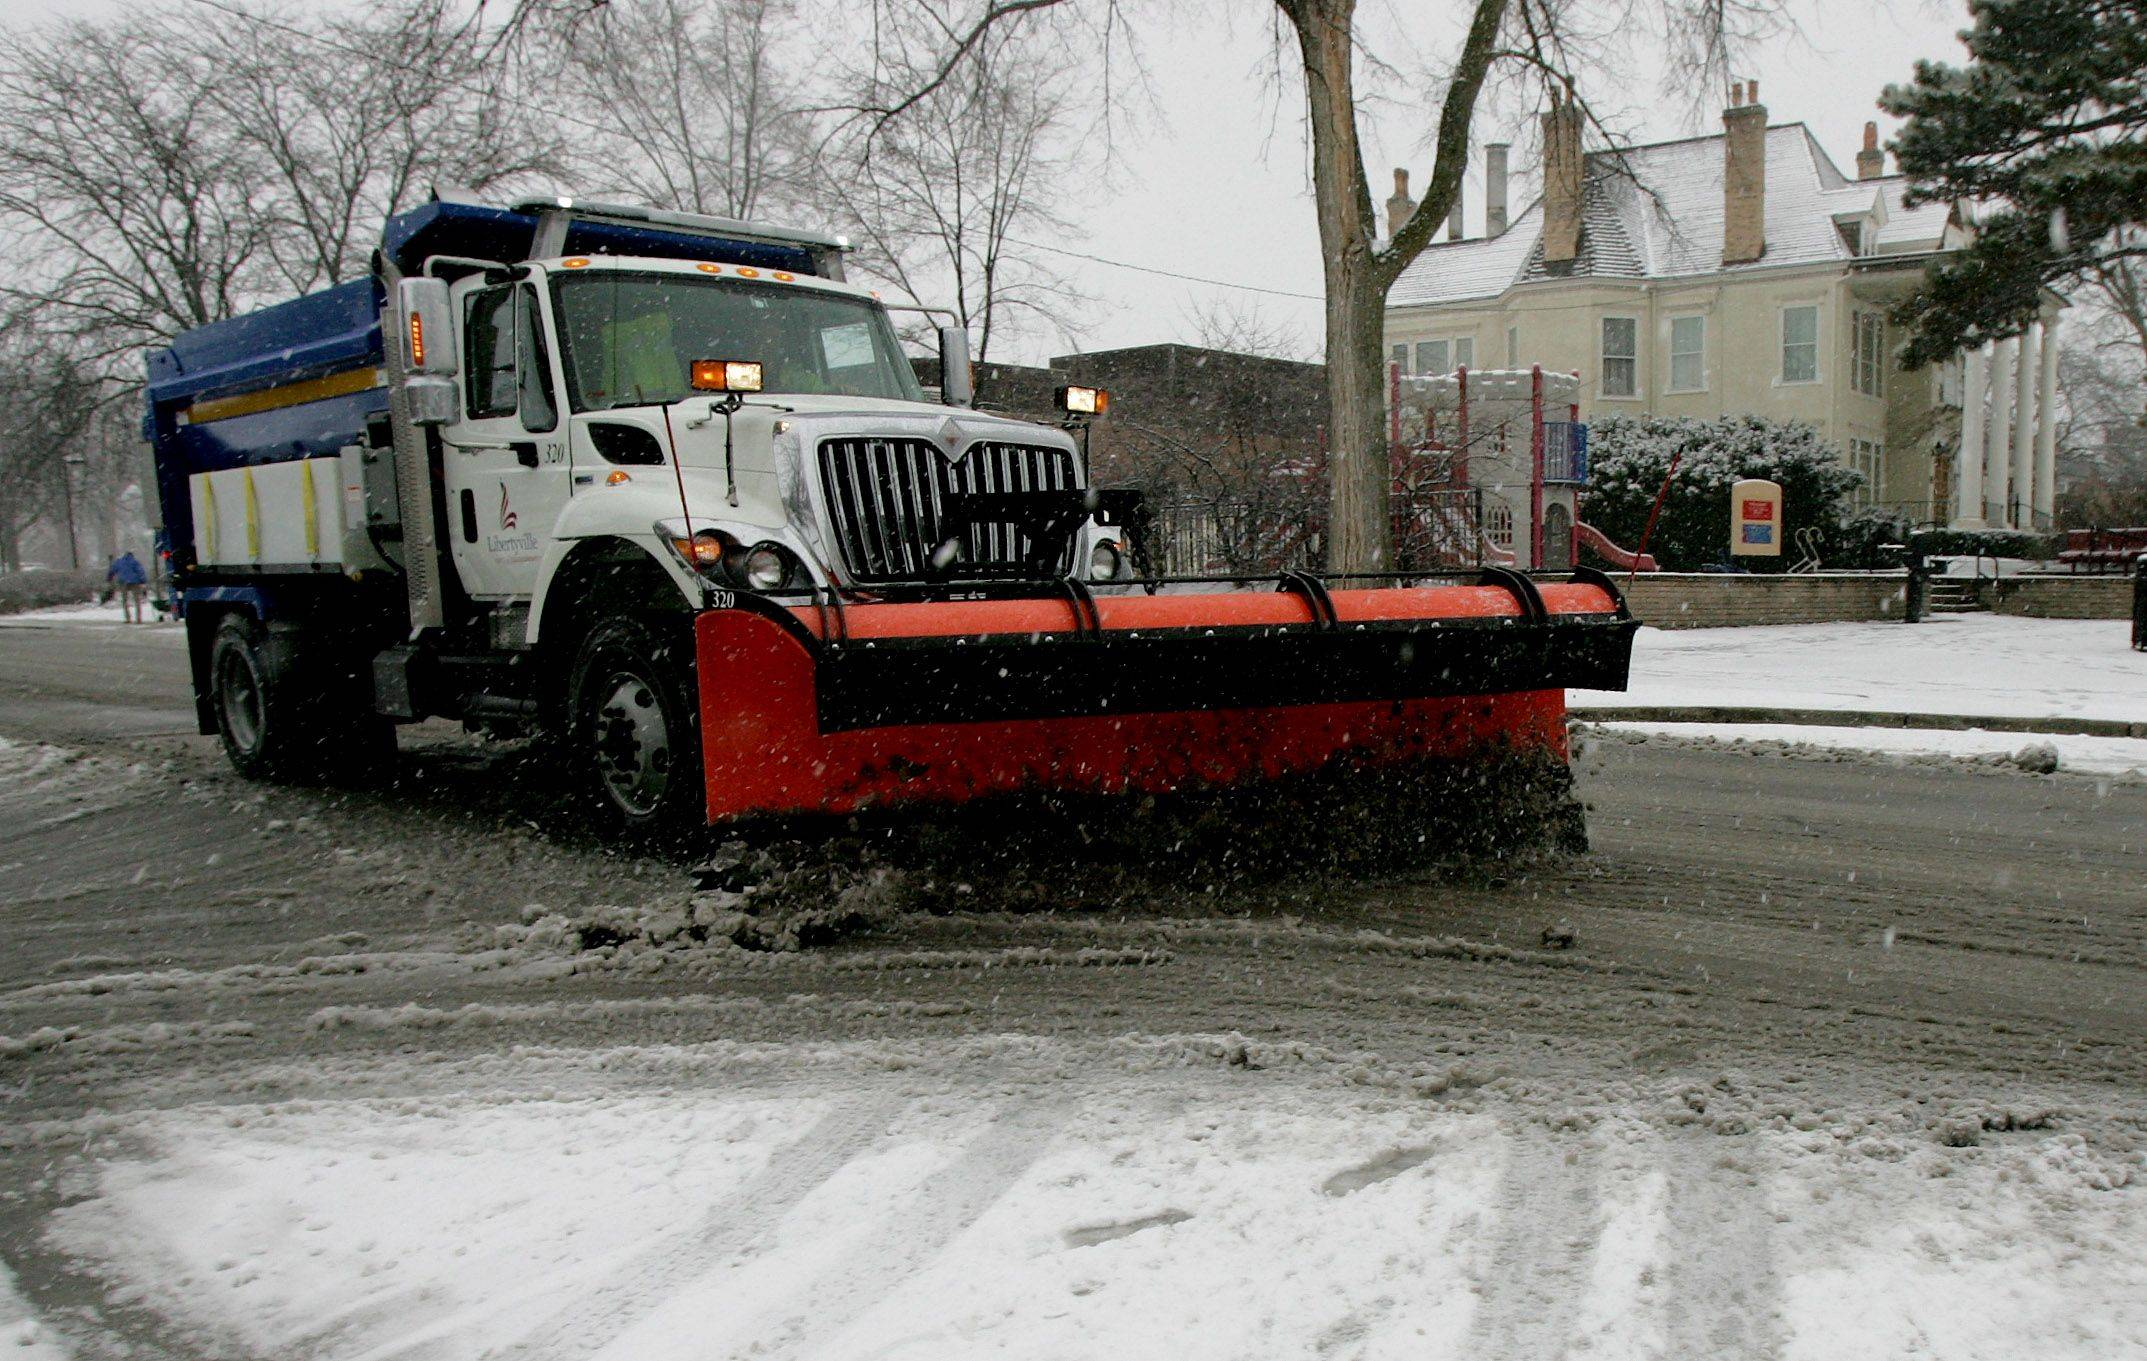 A Libertyville Public Works employee uses a snow plow to clear the roads around Cook Memorial Park.